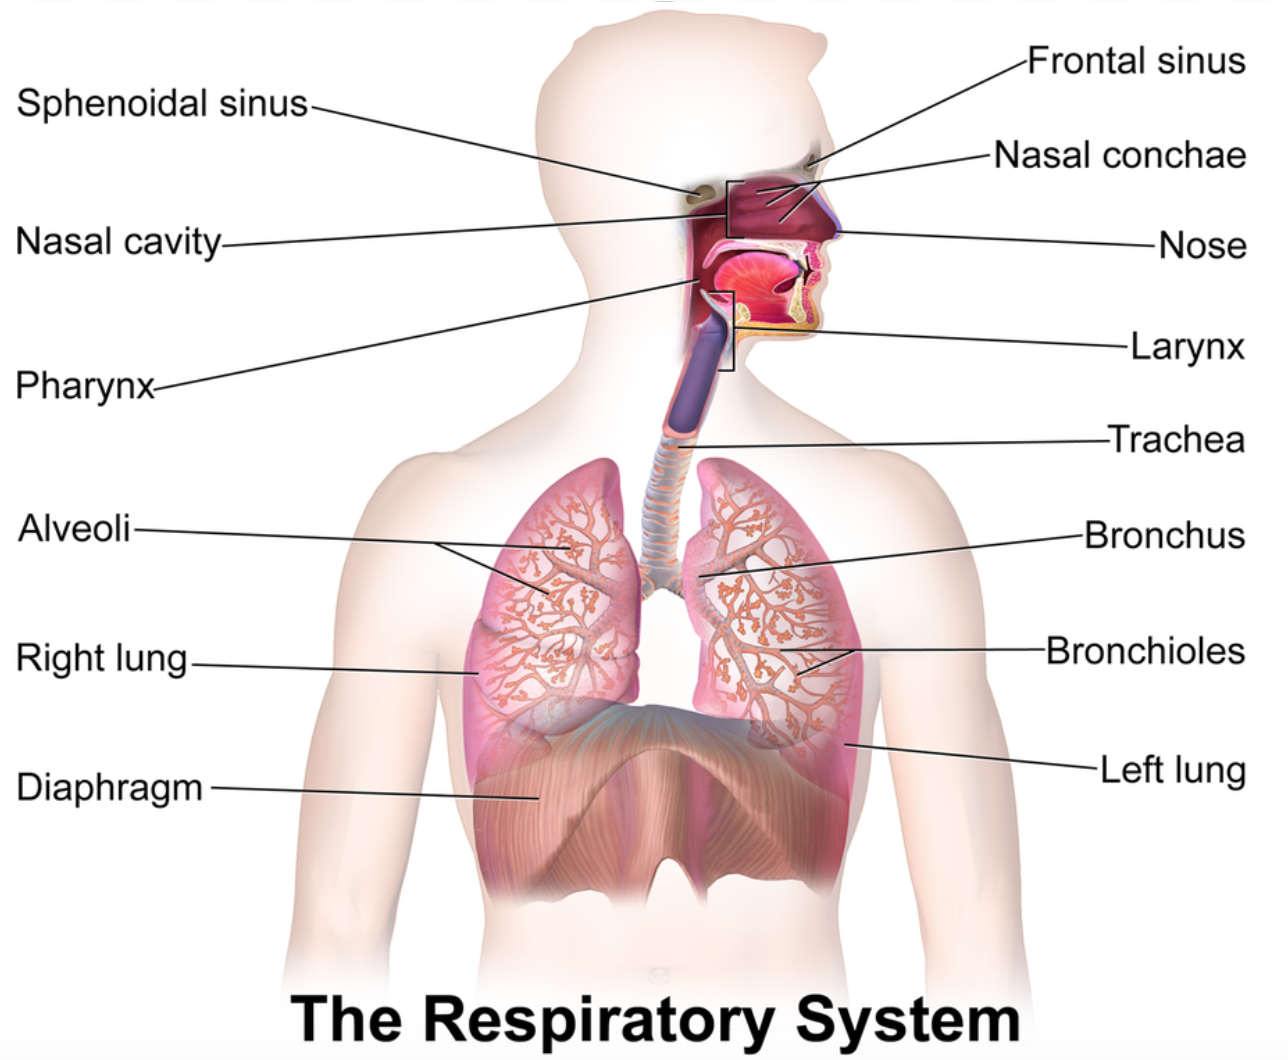 Image show the respiratory system. Animation shows a molecule of oxygen appearing from the right and entering the nose as the word nose enlarges and shrinks. The oxygen then enters the pharynx as the word pharynx enlarges and shrinks. The oxygen then enters into the larynx a as the word larynx enlarges and shrinks. The oxygen then enters the trachea as the word trachea enlarges and shrinks. The oxygen then enters the trachea as the word trachea enlarges and shrinks. The oxygen then enters the bronchus as the word bronchus enlarges and shrinks. The oxygen then enters the bronchioles as the word bronchioles enlarges and shrinks. The oxygen then enters the alveolar ducts as the word alveolar ducts enlarges and shrinks. Finally, the oxygen then enters the alveoli as the word alveoli enlarges and shrinks.